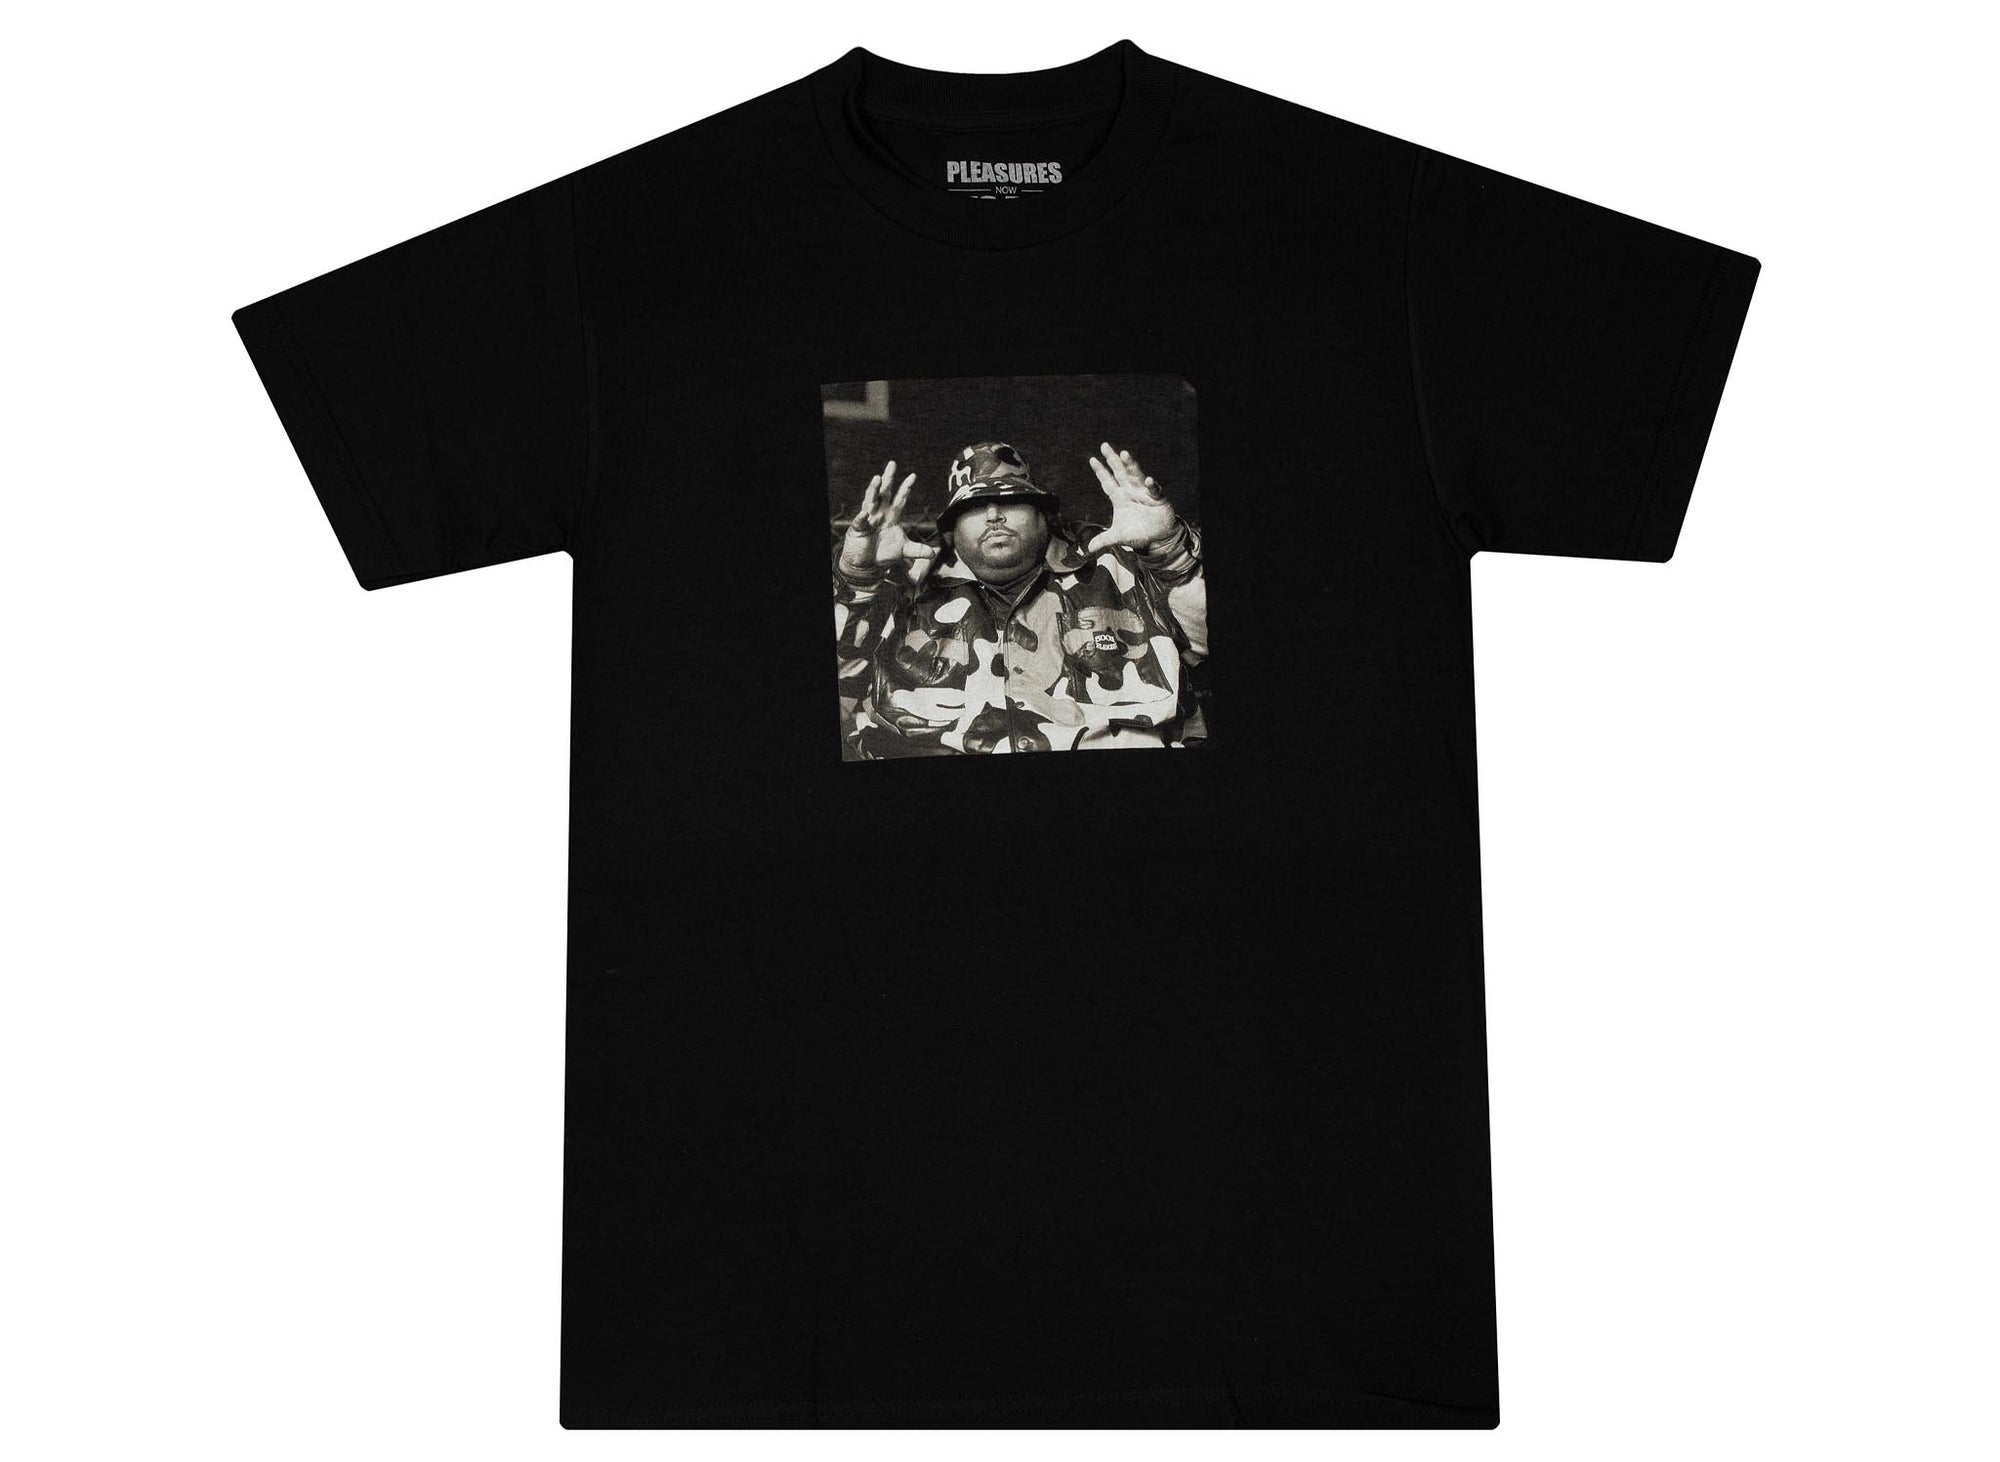 PLEASURES x BIG PUNISHER CHRISTOPHER TEE